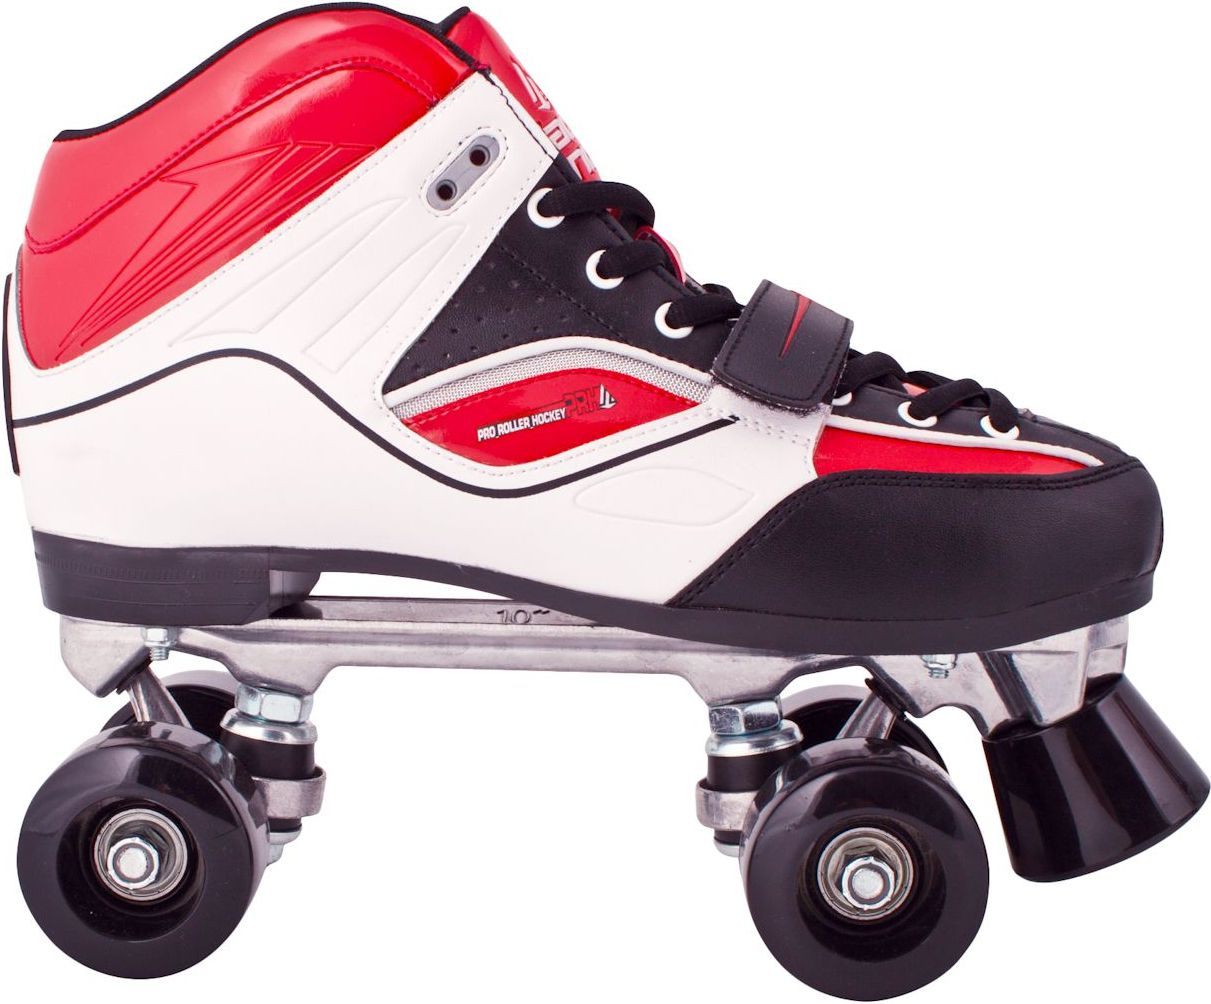 JACK LONDON Wrotki Pro Roller Hockey Senior 231533 rozmiar 39 - WIKR-1012191